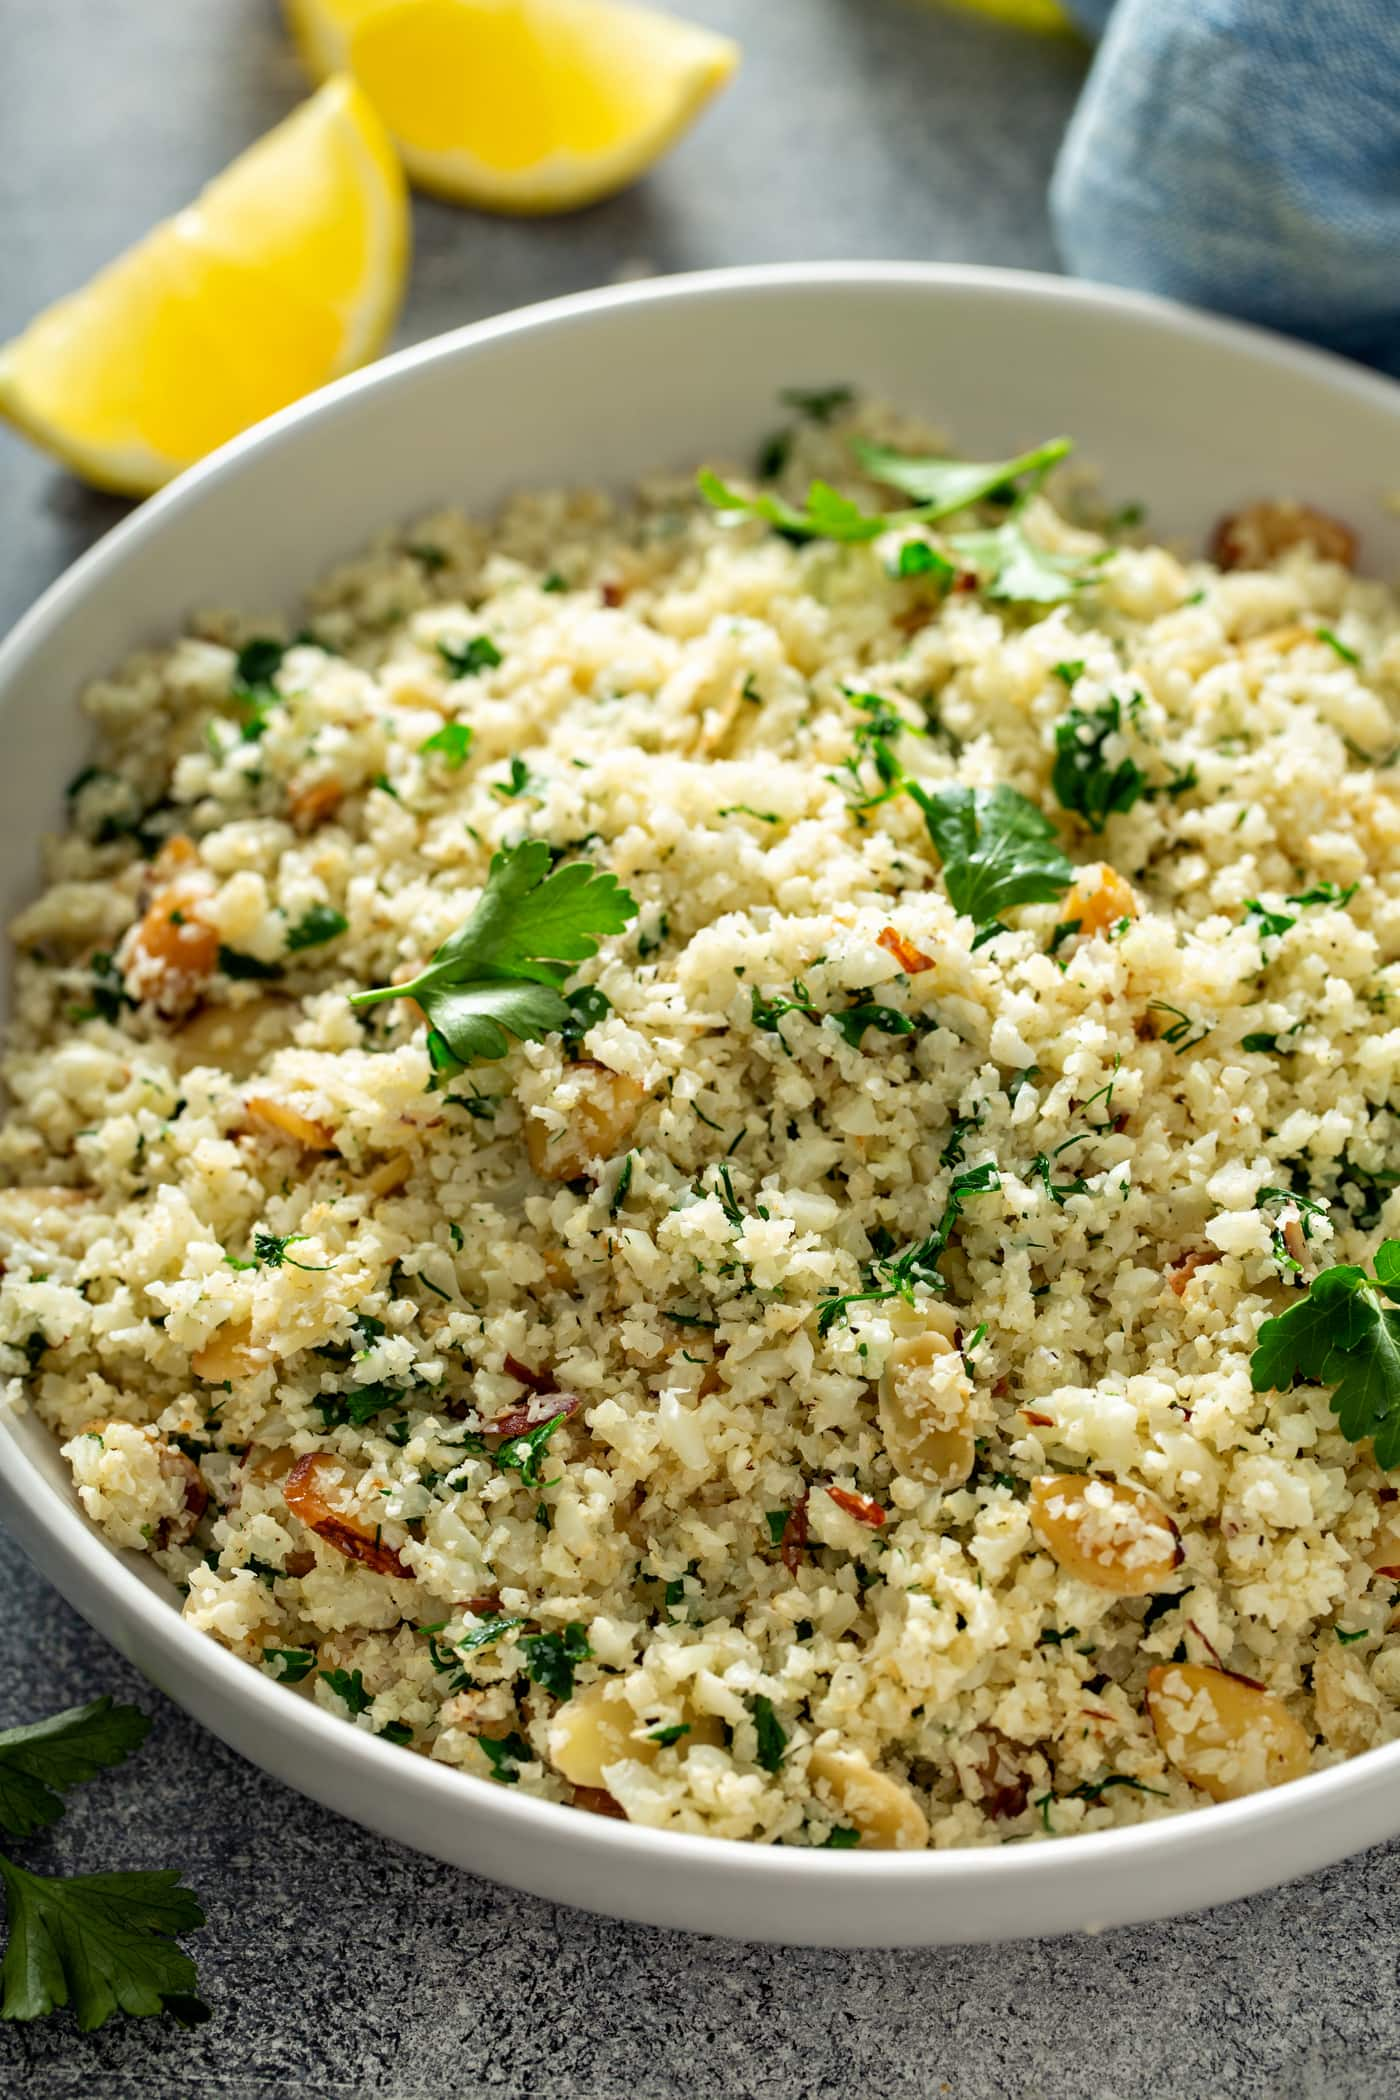 A close-up of a bowl of garlic herb cauliflower rice. There are green herbs, garlic and sliced almonds in the rice, and fresh parsley leaves scattered on top. There is a lemon wedge in the background.